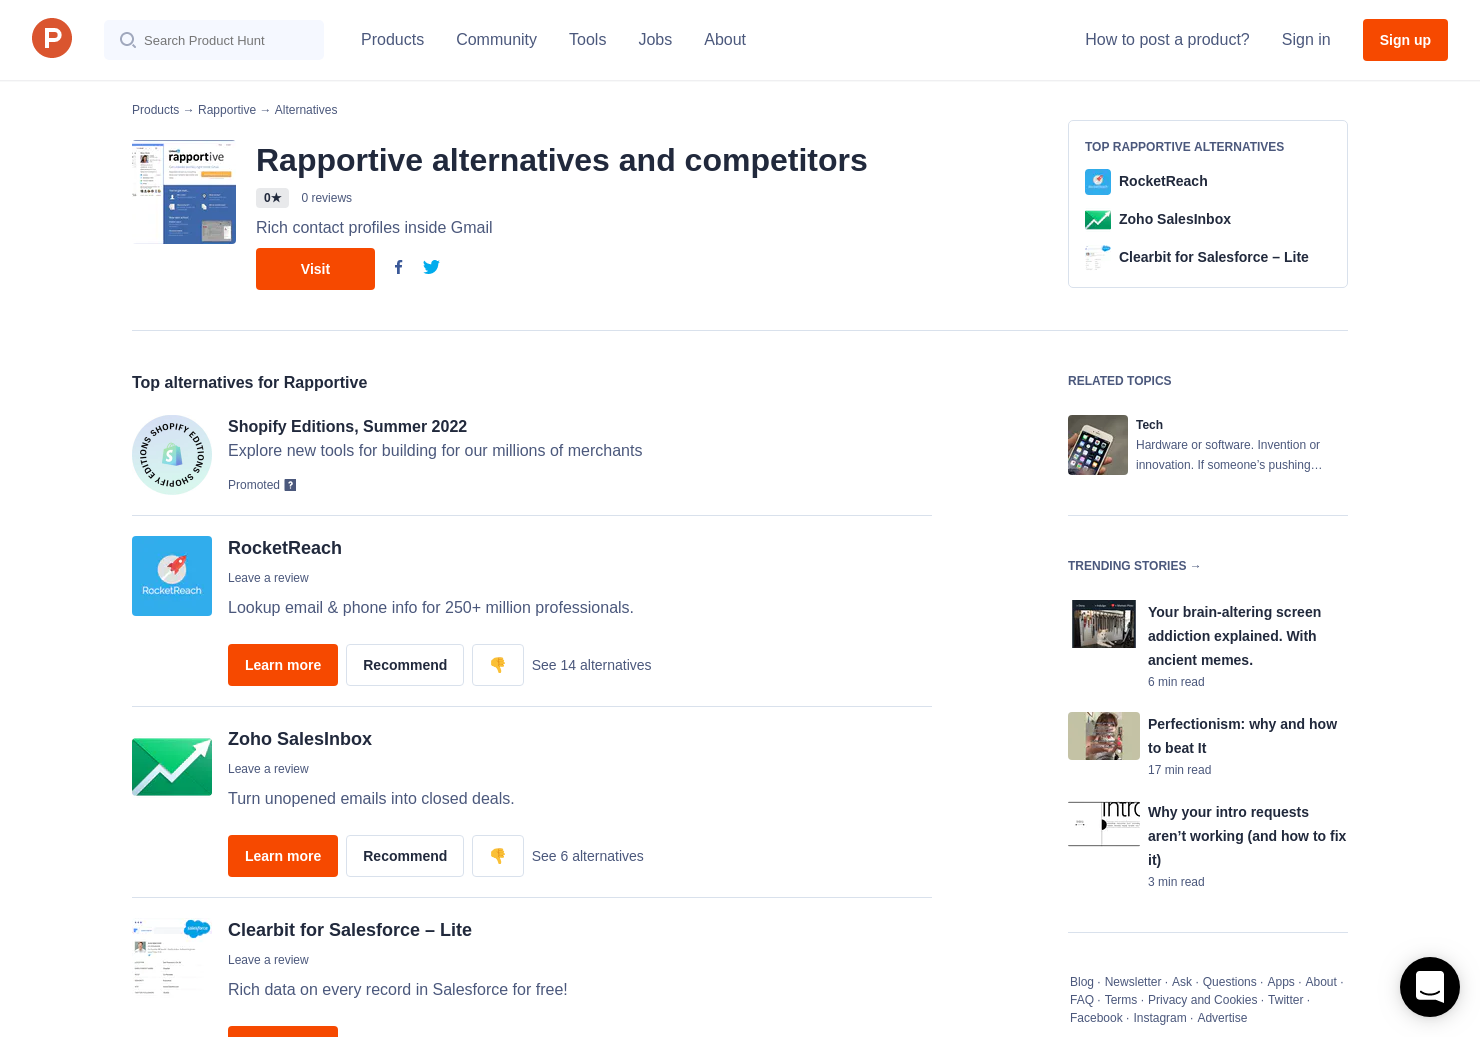 8 alternatives to rapportive product hunt